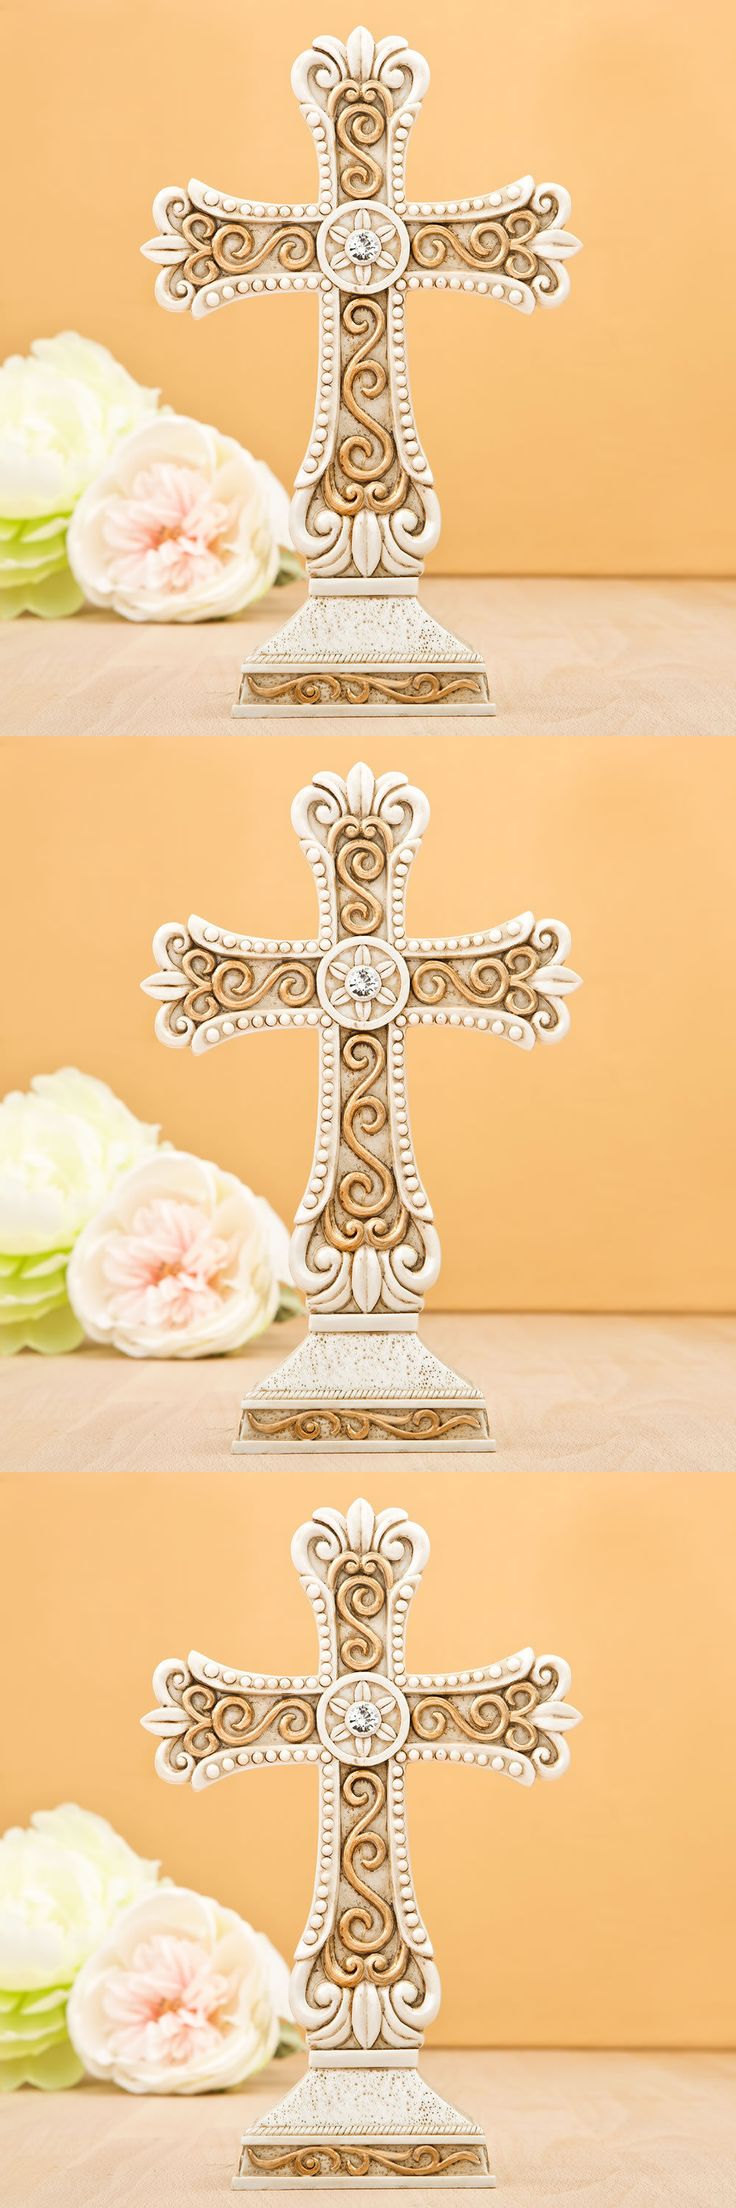 Favors and Party Bag Fillers 26385: 20 Antique Cross Statue Figurine Large Baby Shower Party Event Favor Bulk Lot -> BUY IT NOW ONLY: $155.99 on eBay!